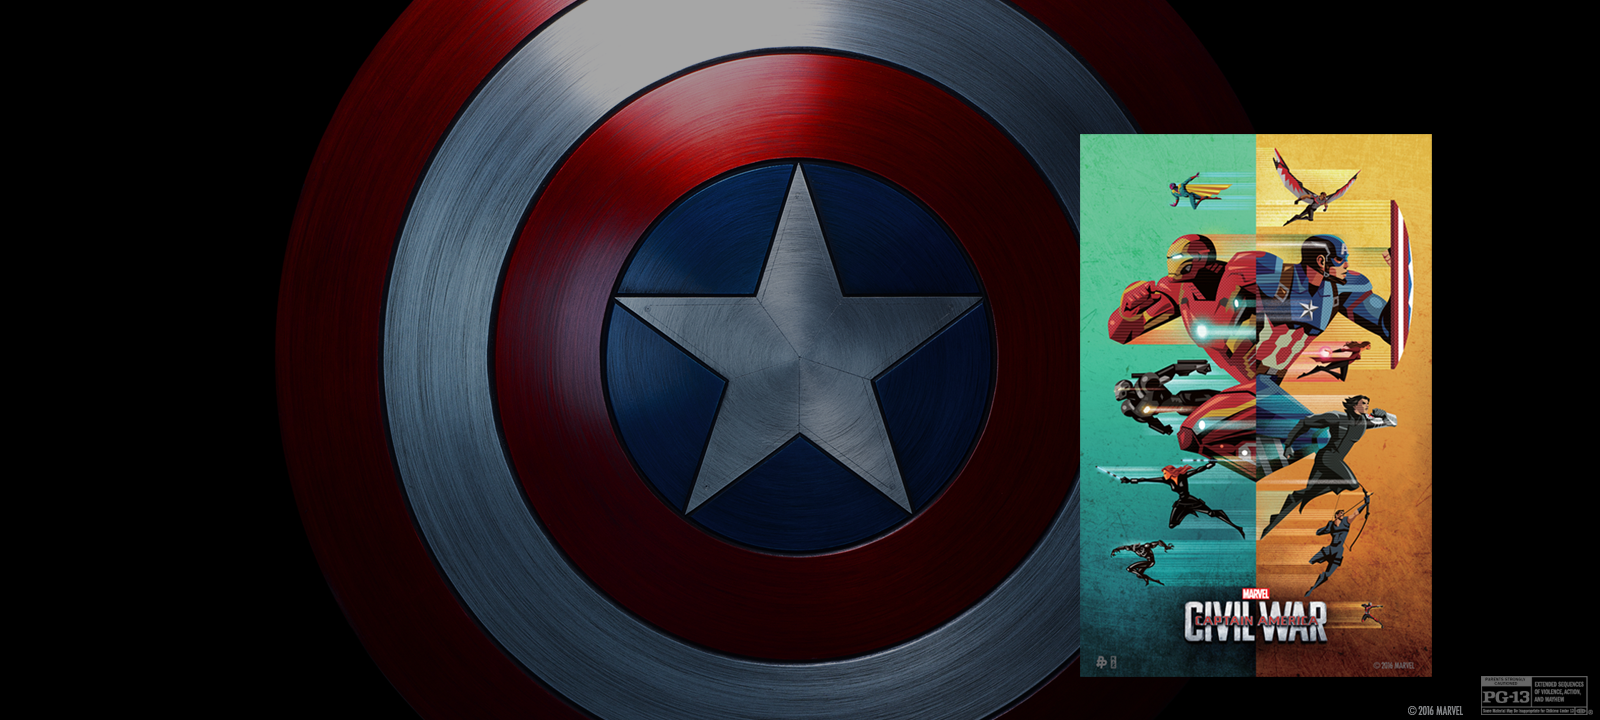 """Disney Movie Rewards Offers Free """"Civil War"""" Poster for Linking Your Fandango Account"""